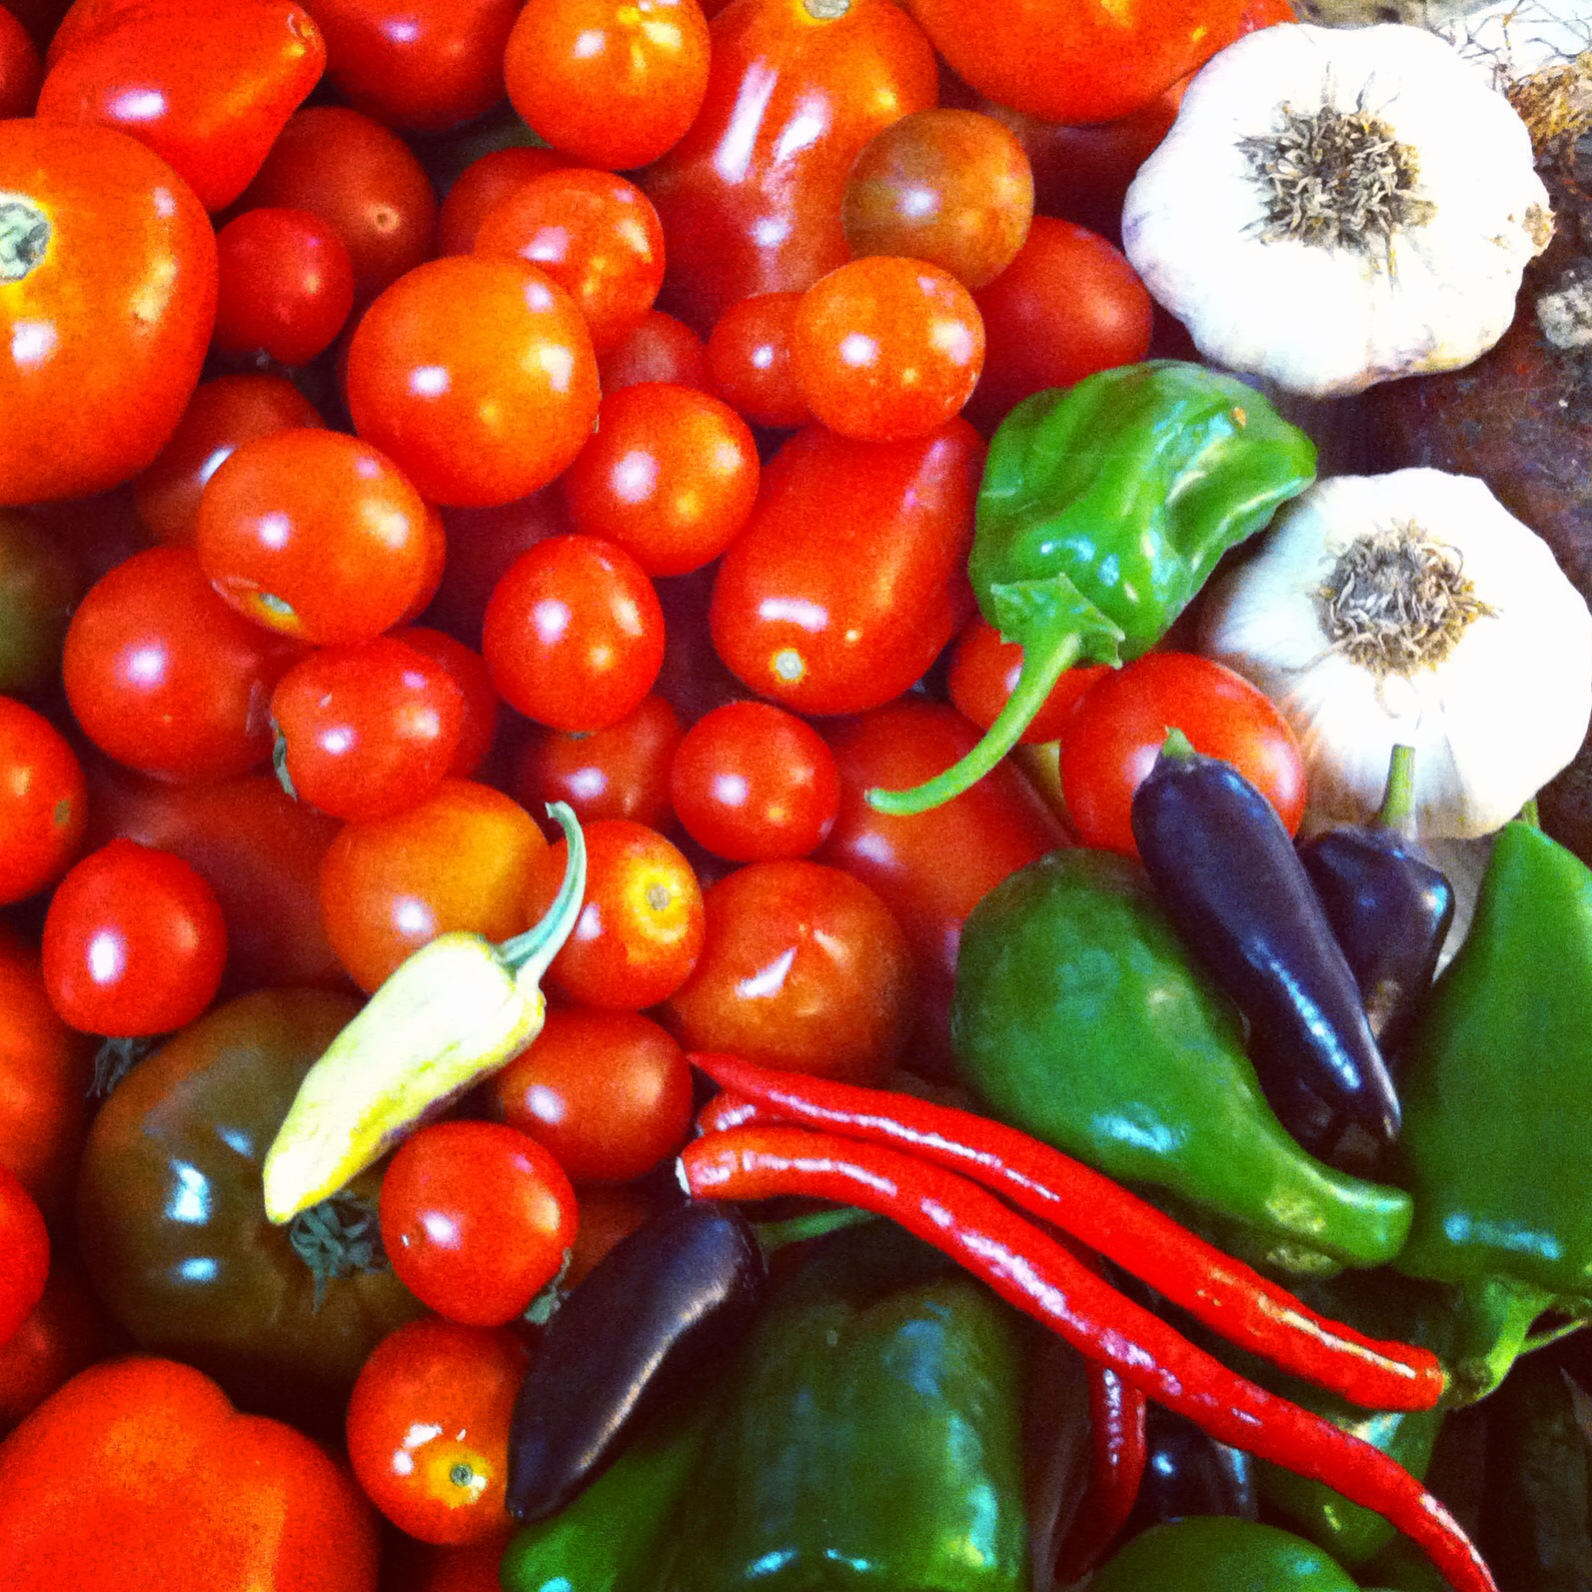 Salsa time at Tyrant Farms! Fresh-picked tomatoes, hardneck garlic and peppers ready to go into the blender.